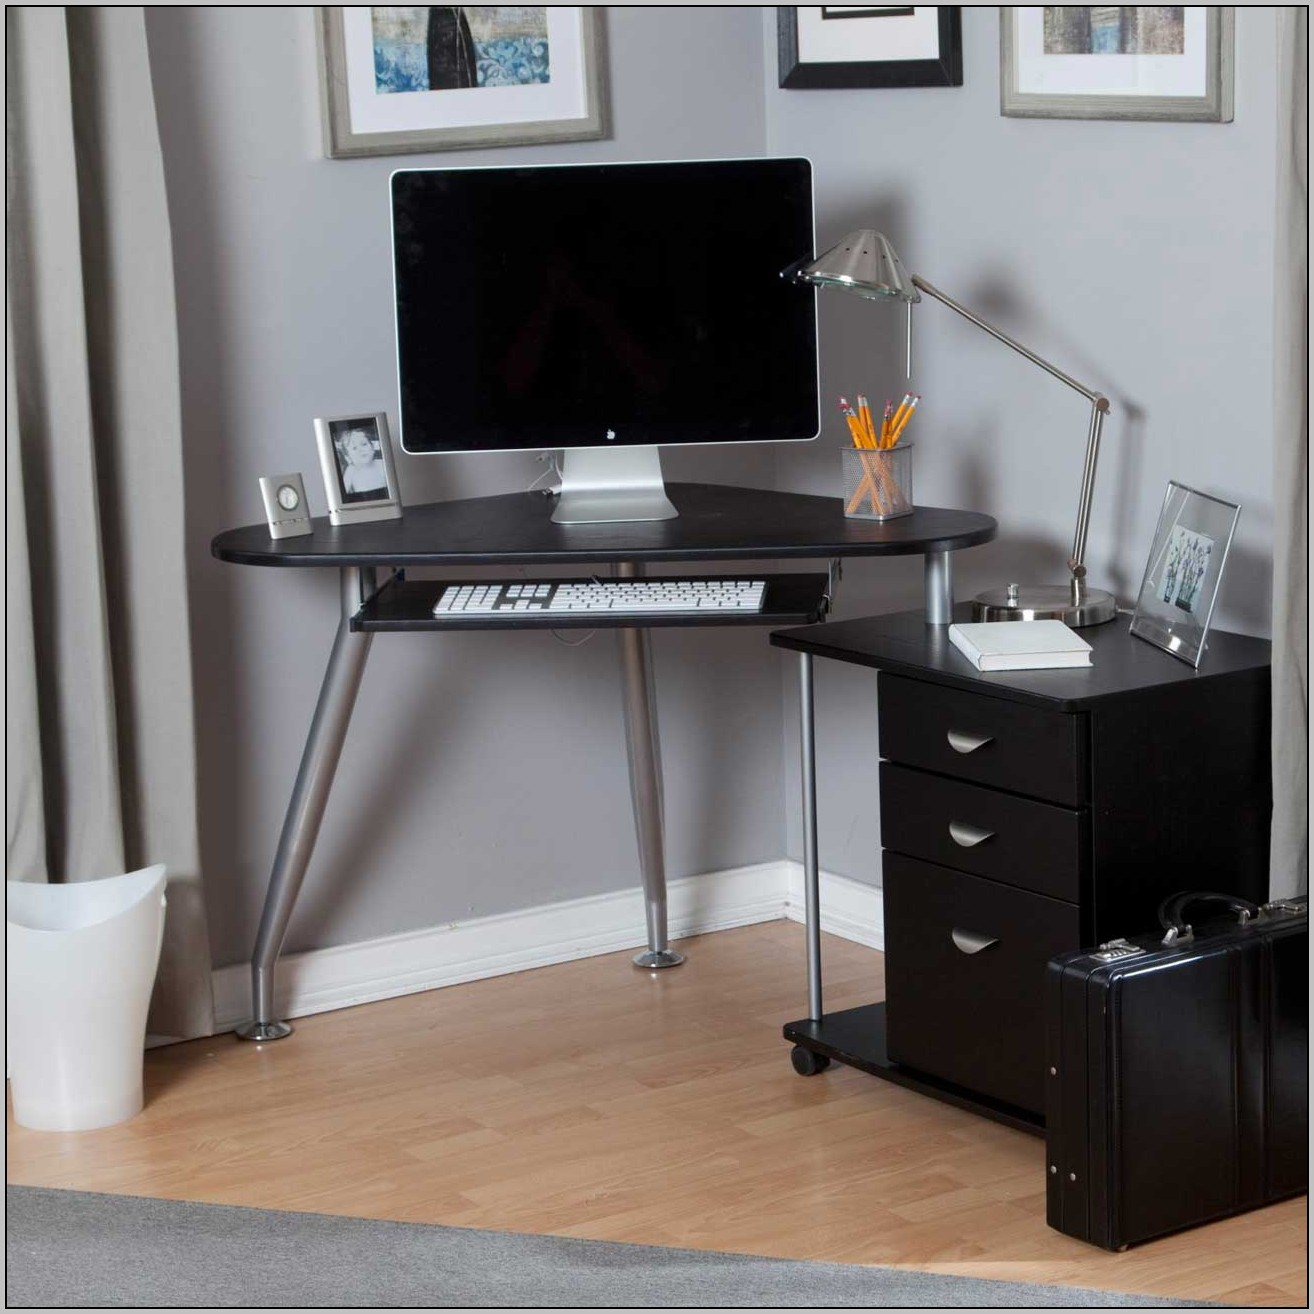 Small desks for small spaces ikea desk home design ideas ord5rrbqmx25755 - Small spaces ikea photos ...